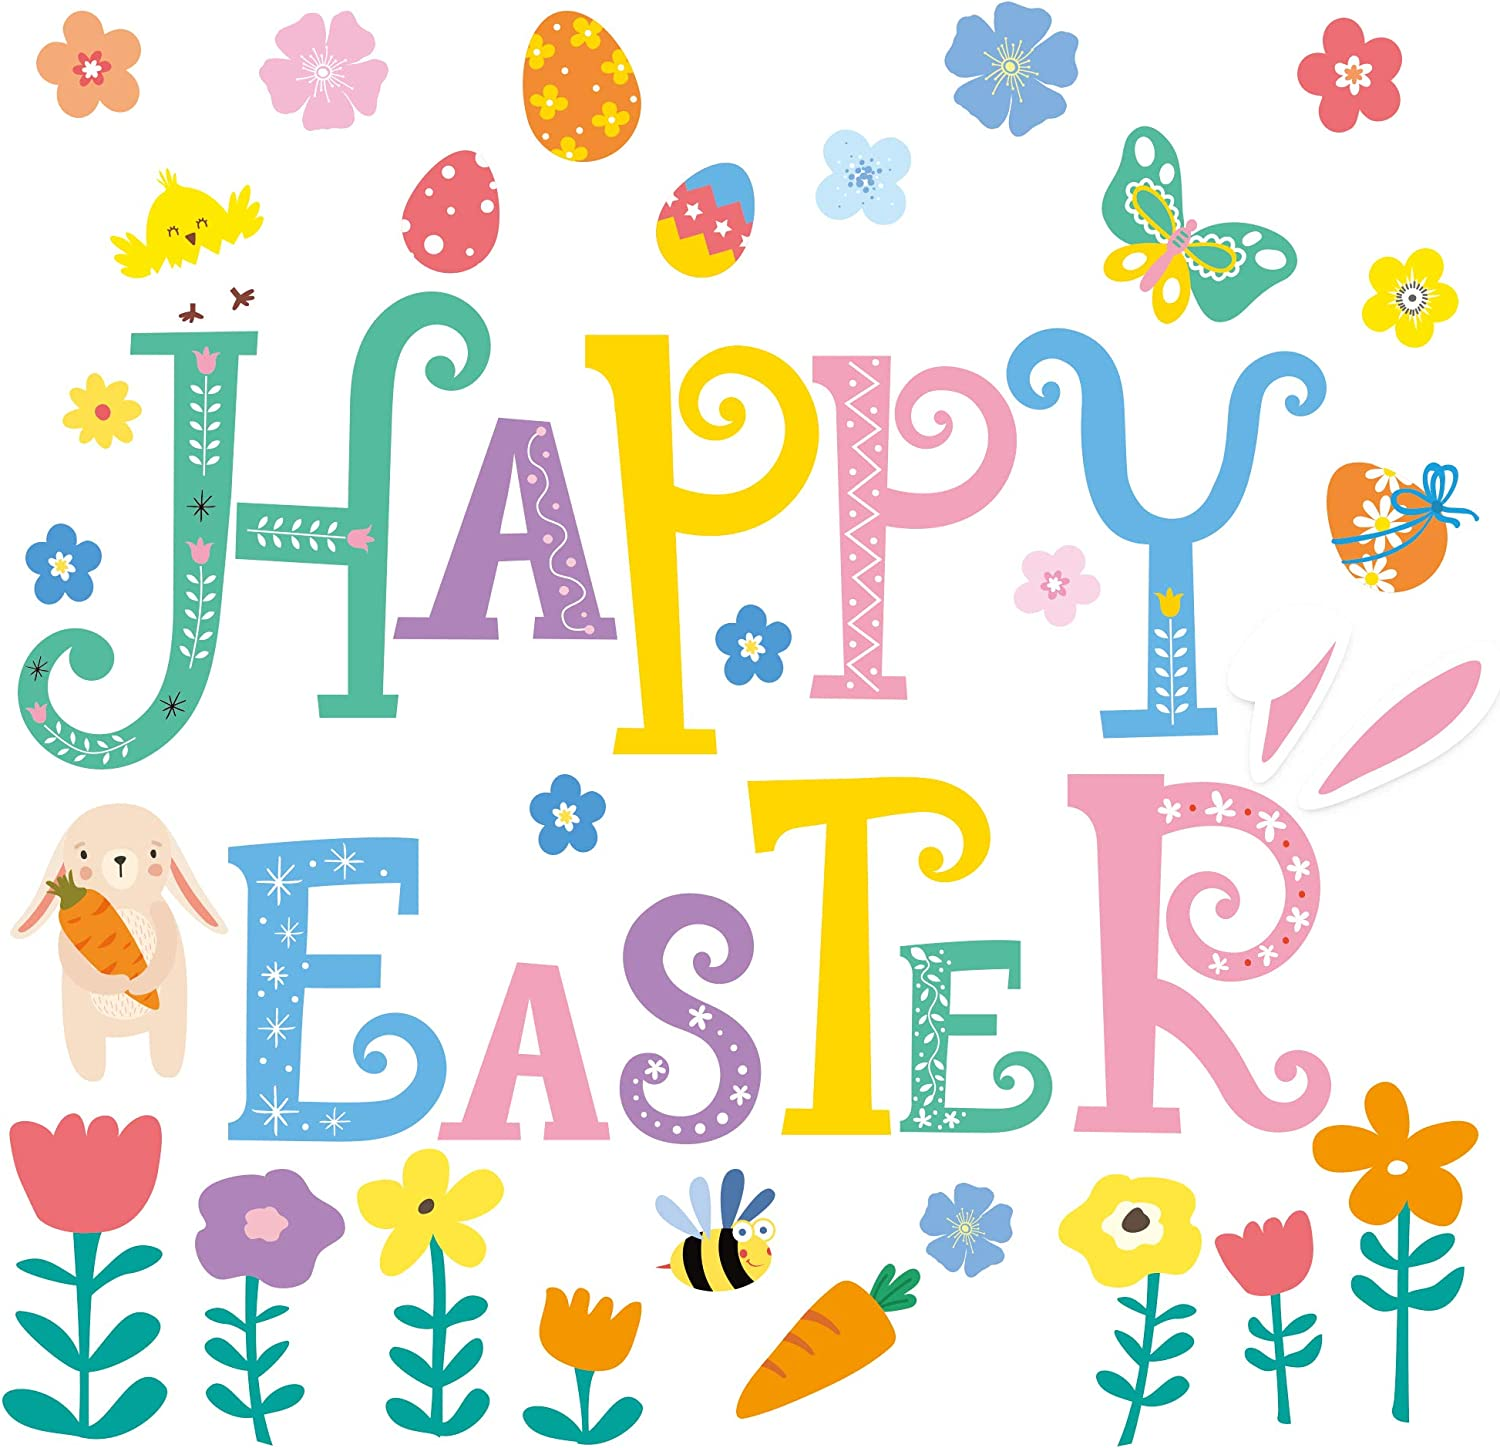 Whaline Happy Easter Decoration Stickers 42Pcs Easter Garage Door Decals Non-Magnetic Easter Rabbit Bunny Egg Flower PVC Sticker with Glue Point for Fridge Window Wall Holiday Party Decor